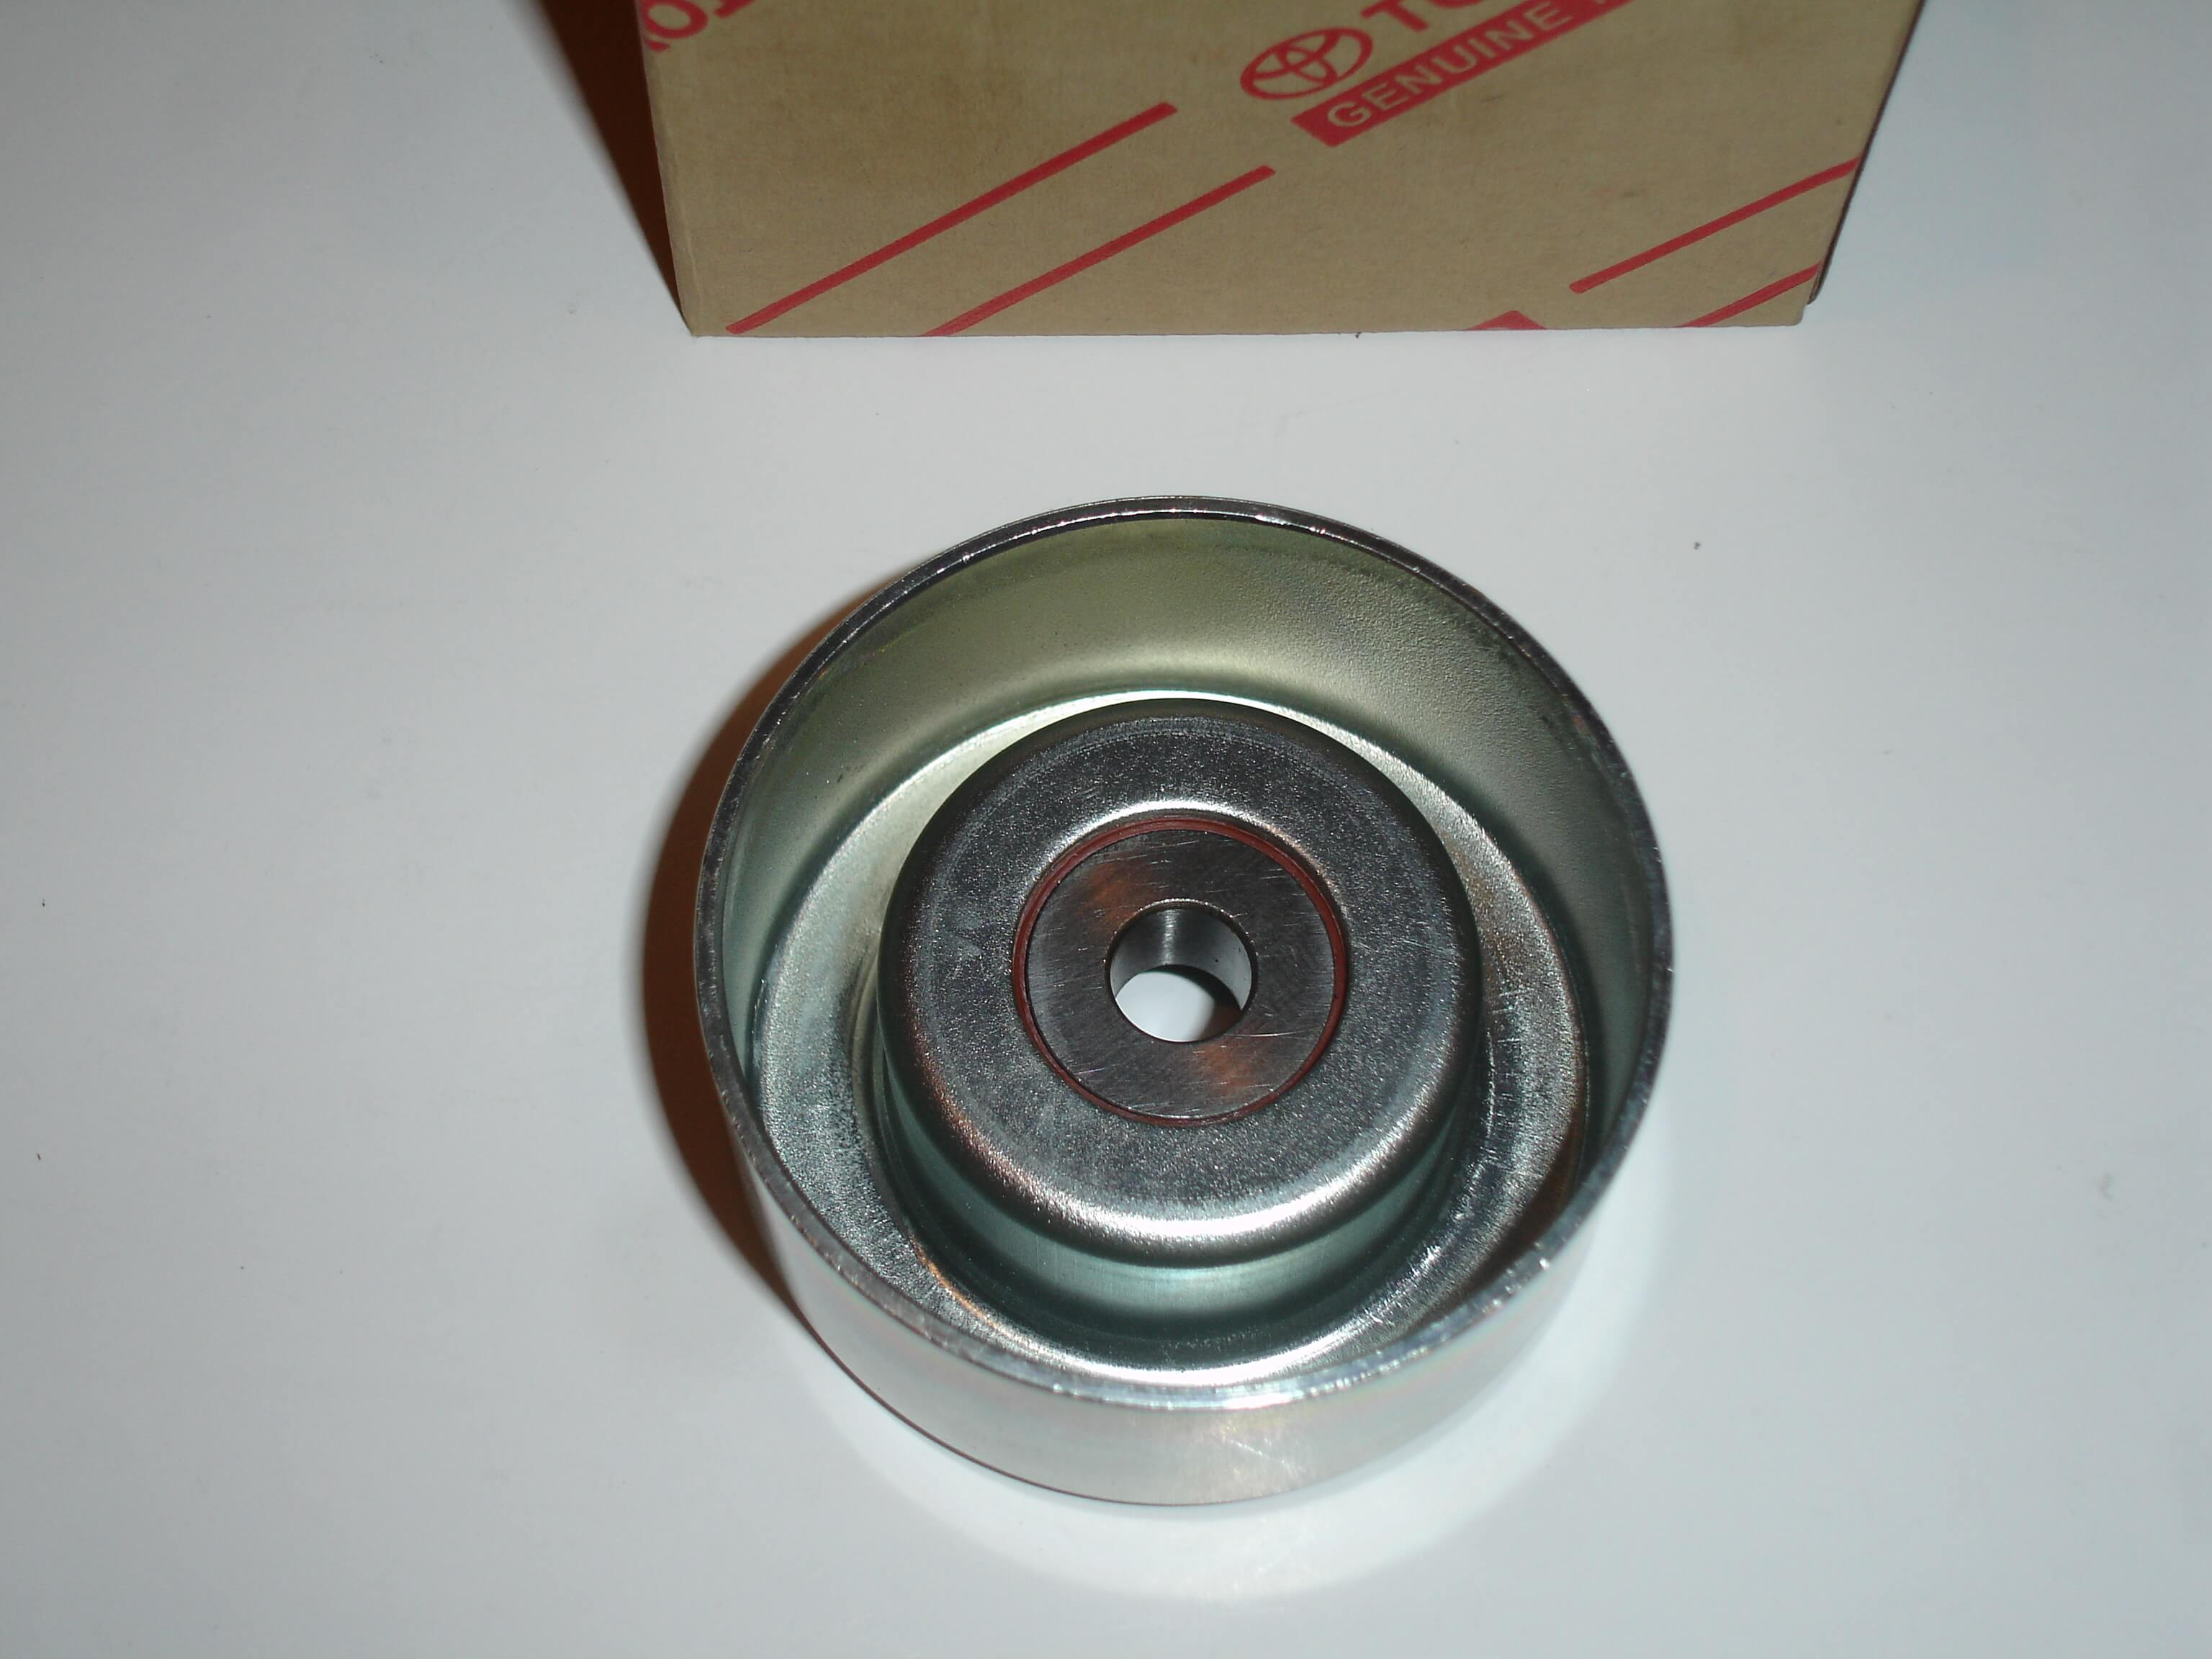 Toyota Lexus OEM 16604-31010 Idler Pulley No. 2 16604-31020 16604-0P011 Tacoma